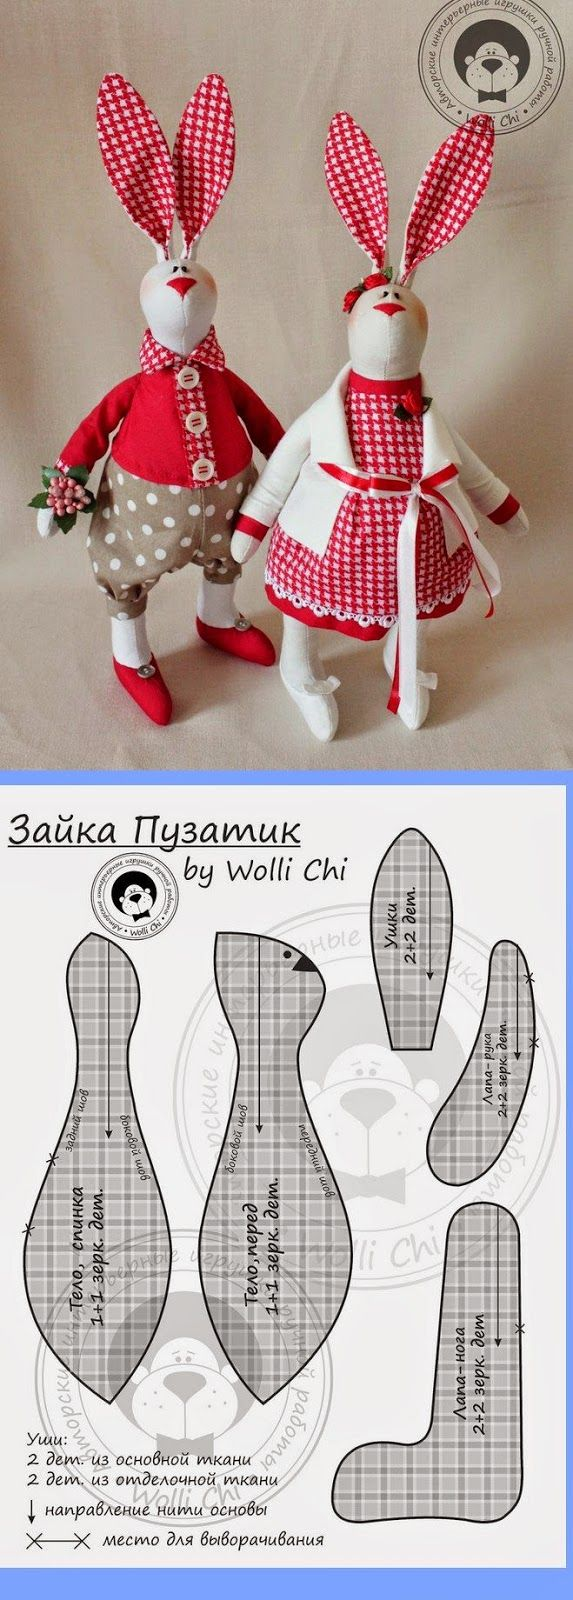 ART WITH QUIANE - Paps, Molds, EVA, Felt, seams, 3D Fofuchas: rabbit new template for crafts